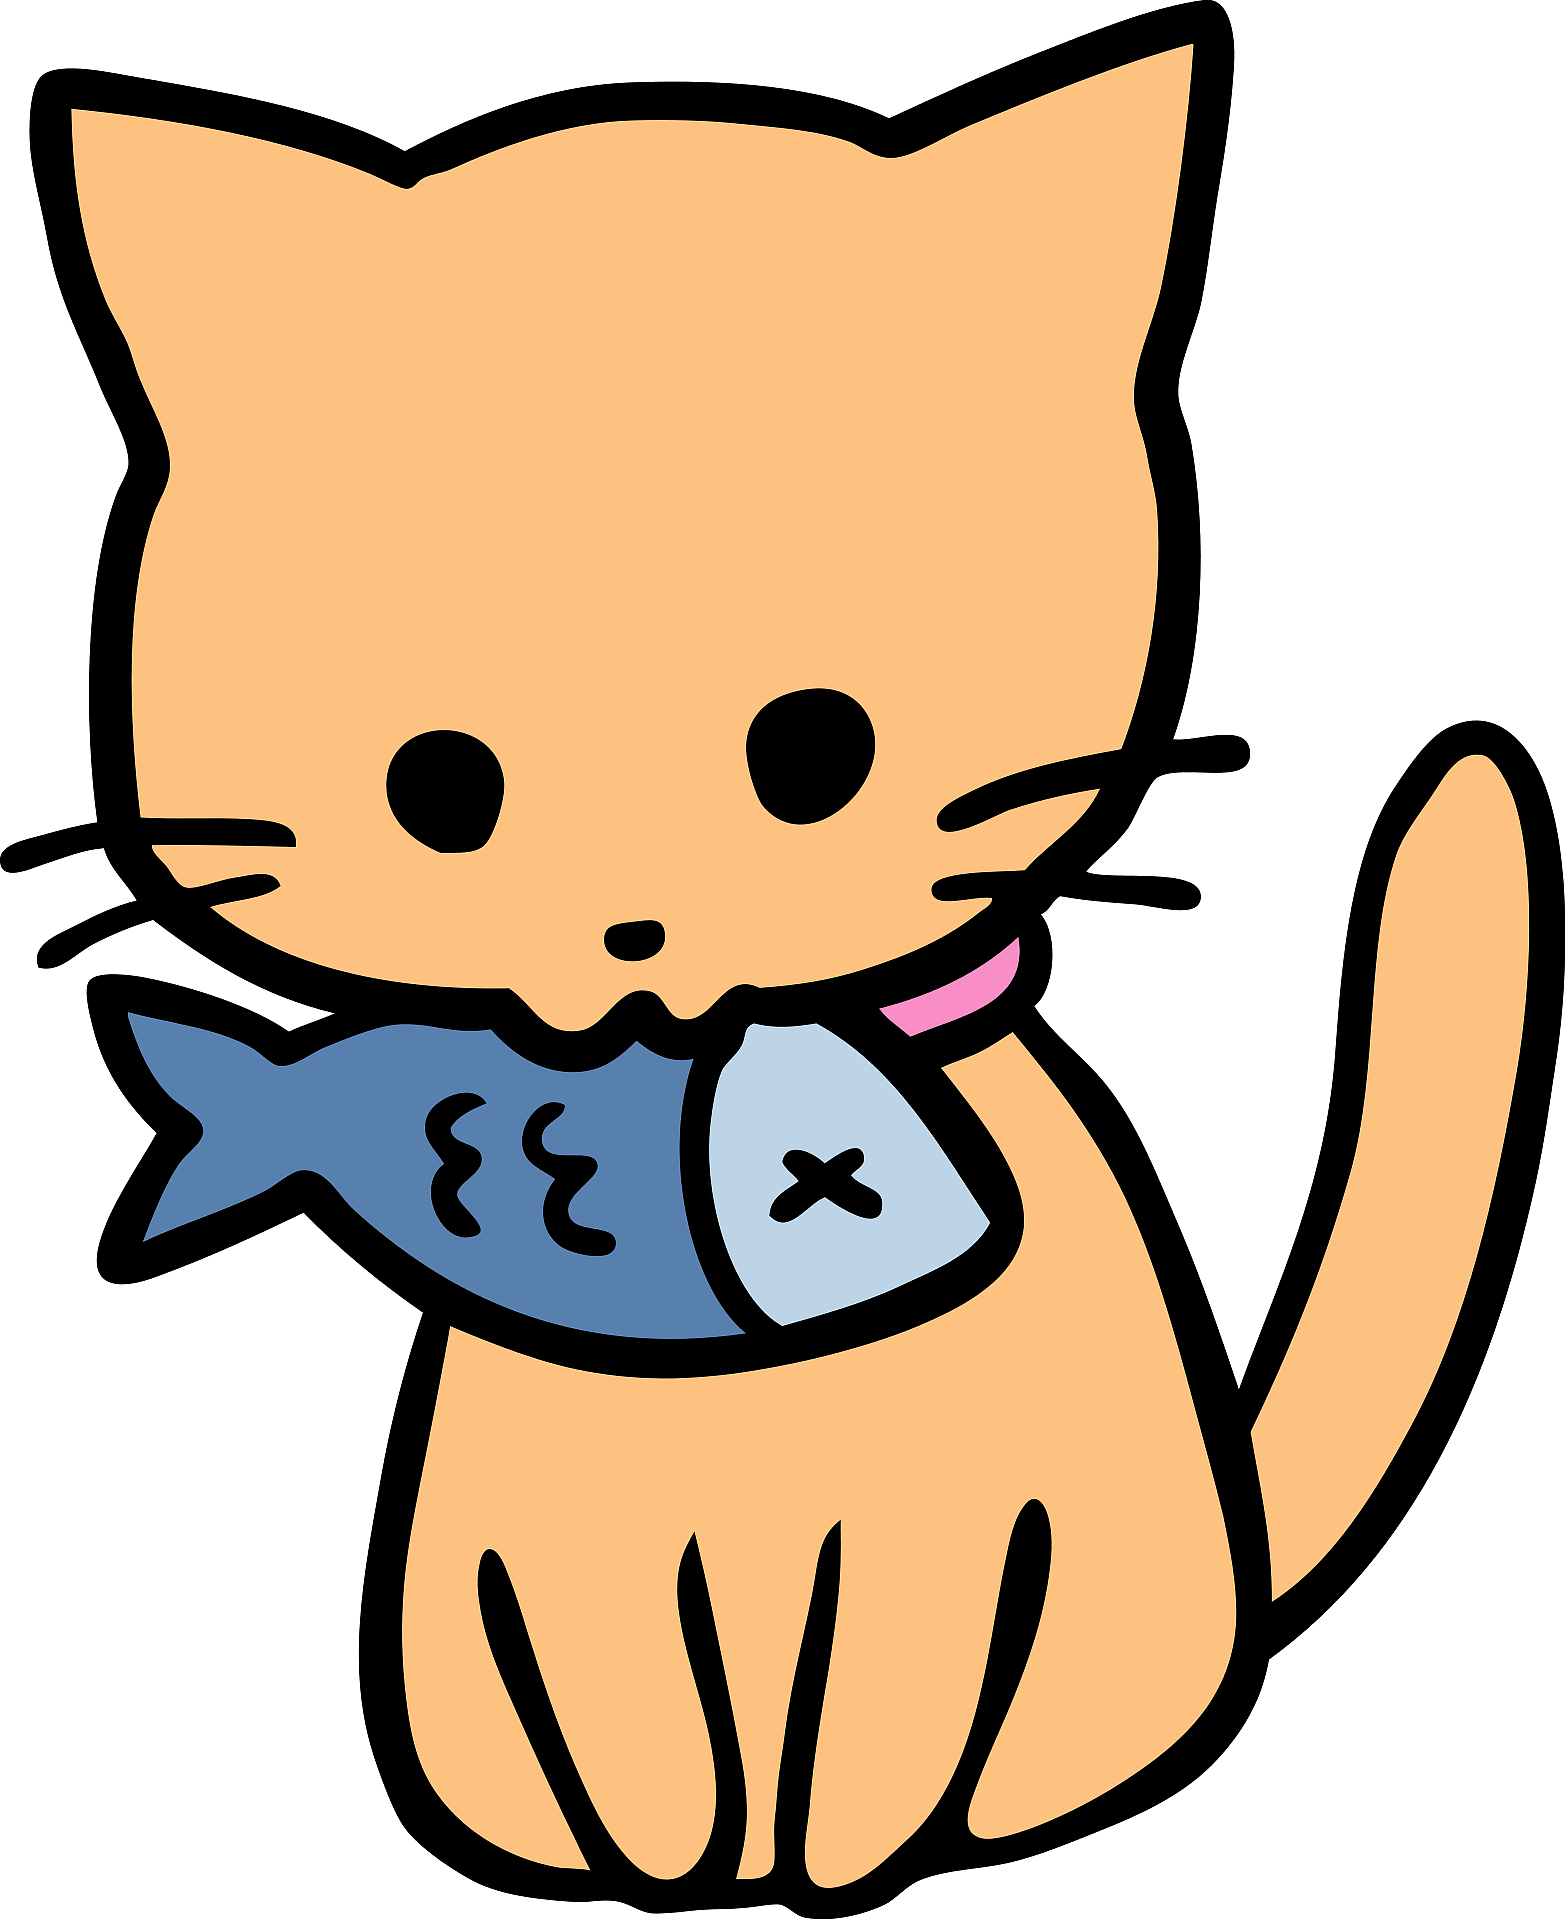 Cat suit Clipart Vector Graphics. 1,214 Cat suit EPS clip art vector and  stock illustrations available to search from thousands of royalty free  illustrators